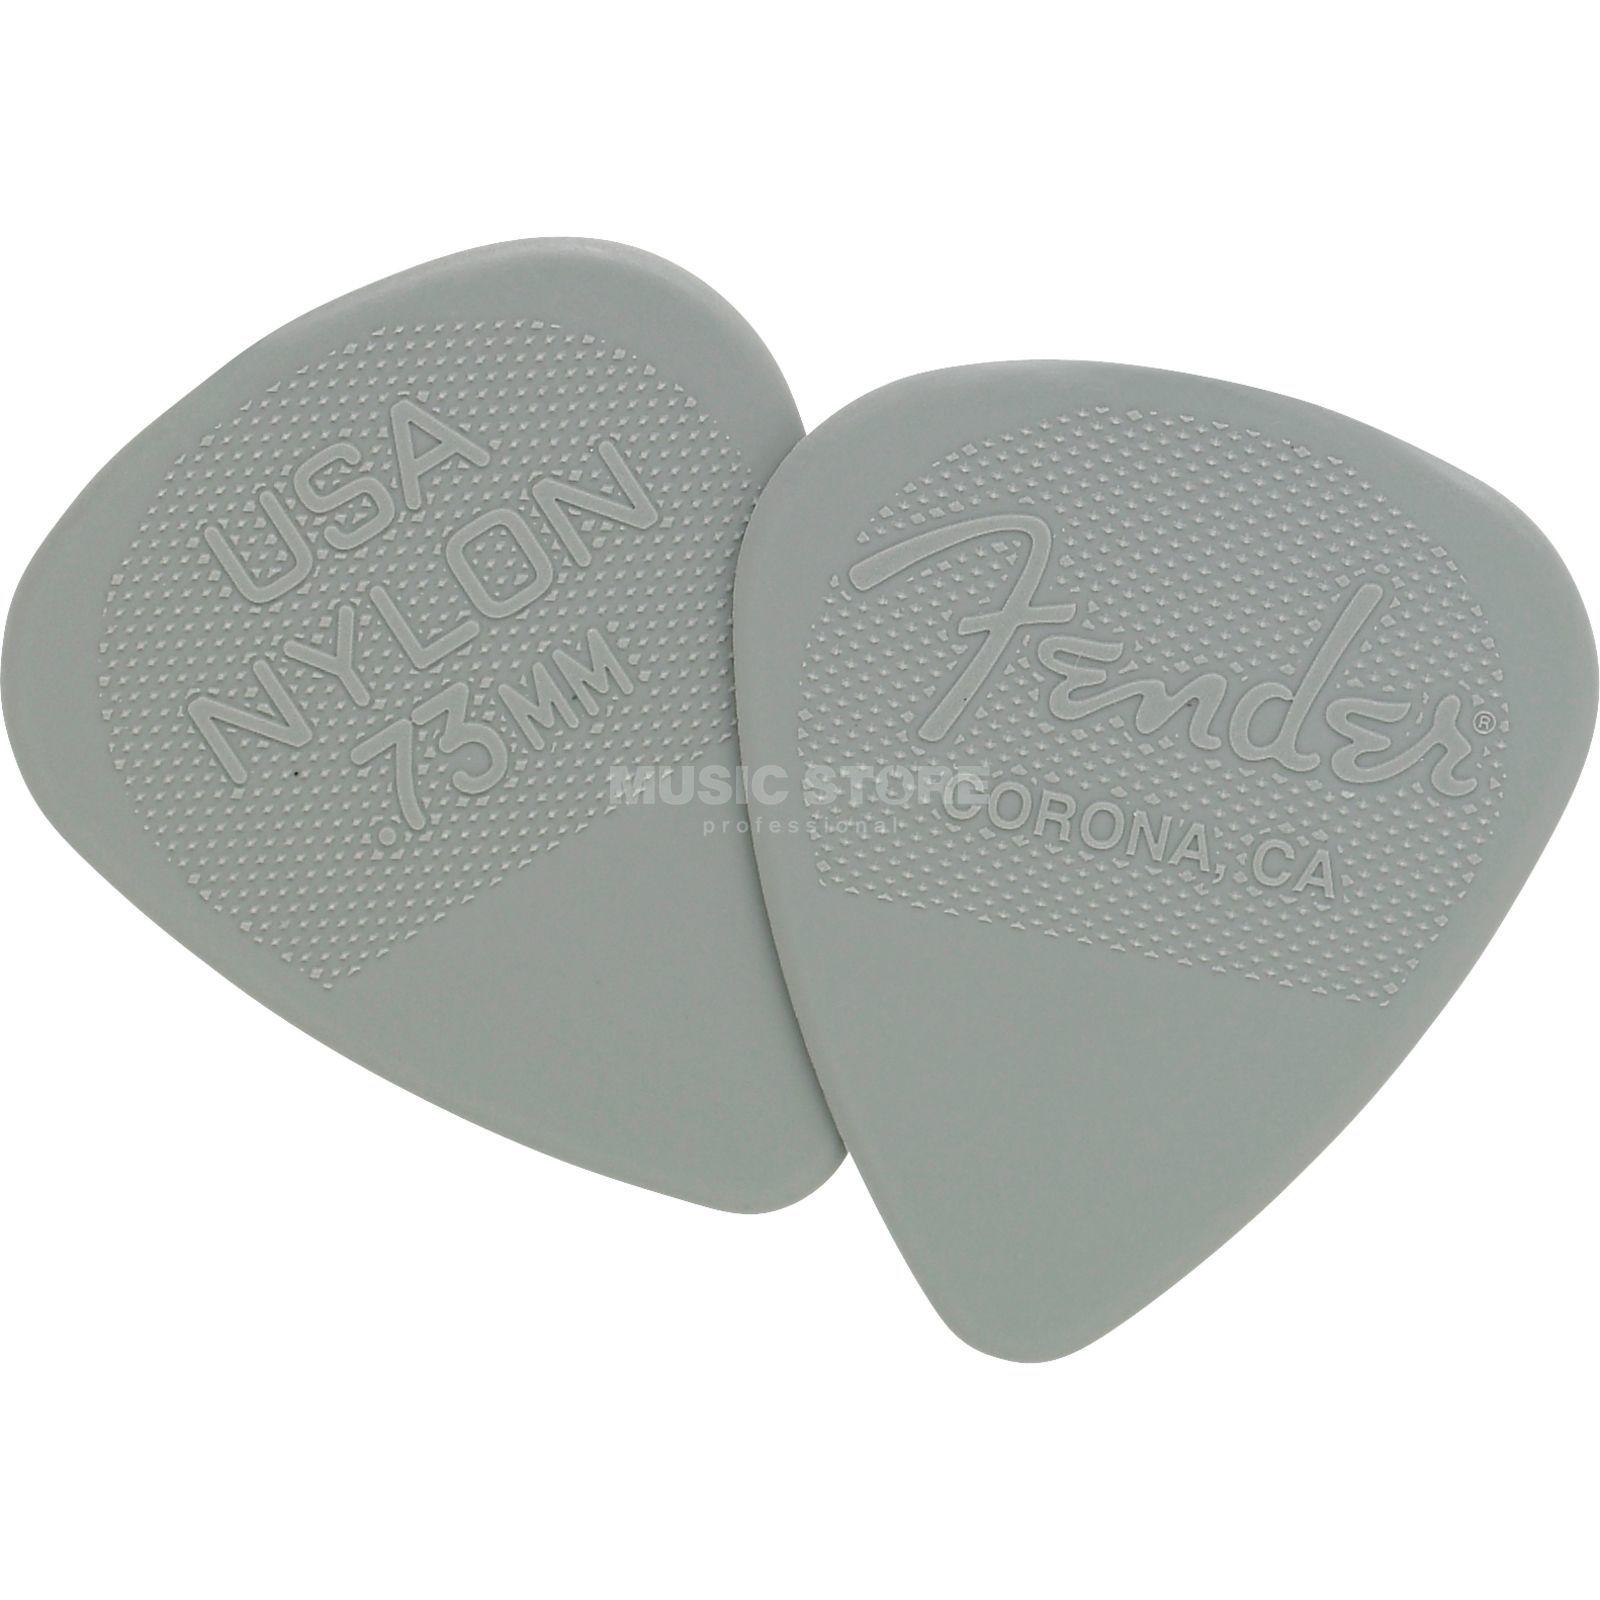 Fender Nylon Picks 12er Set 0,73 Produktbild